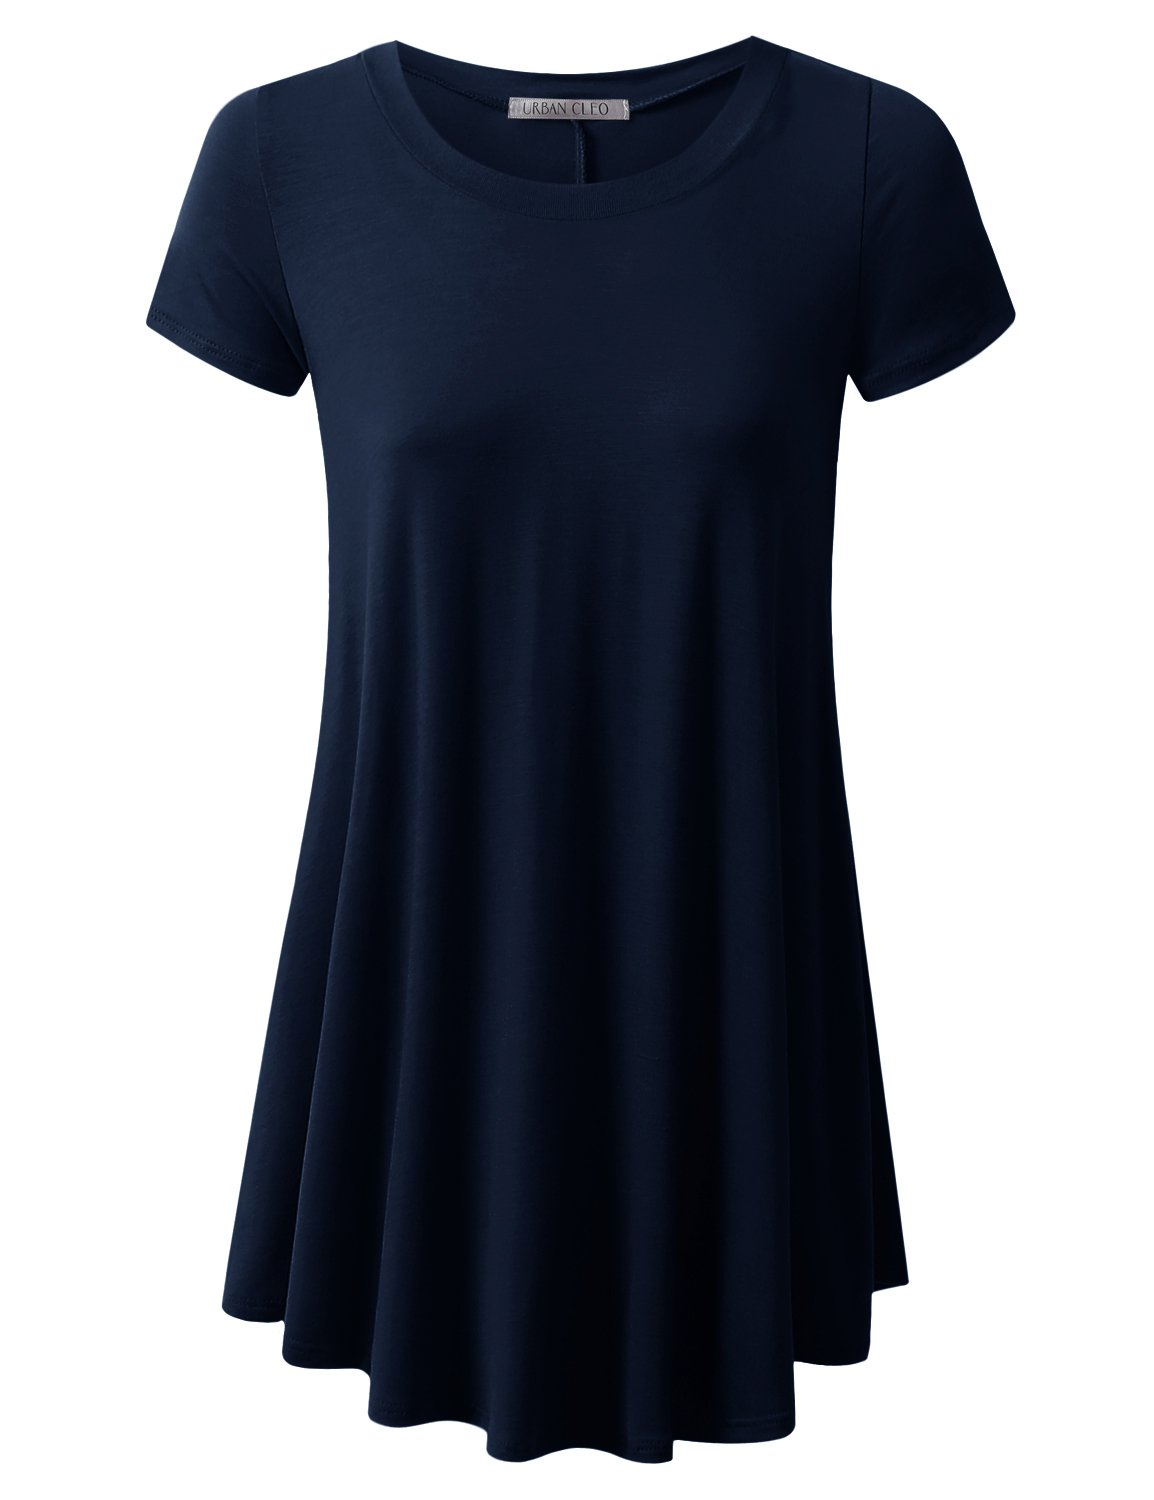 URBANCLEO Womens Round Neck Elong Tunic Top Mini T-Shirt Dress Navy 2XLARGE